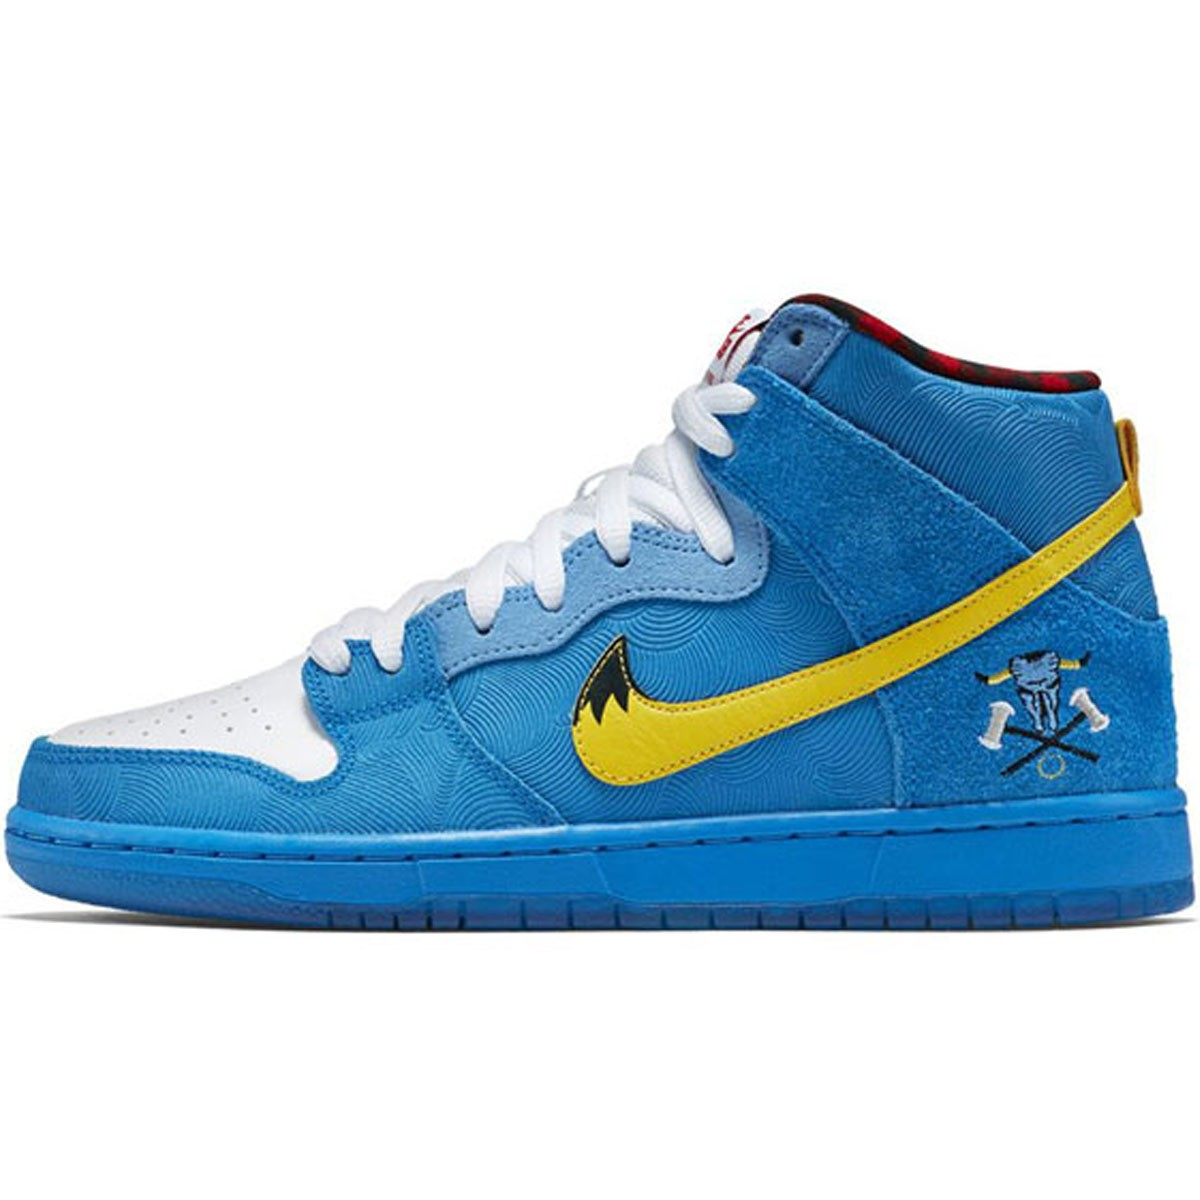 Nike SB x Familia Dunk High Premium SB Shoes